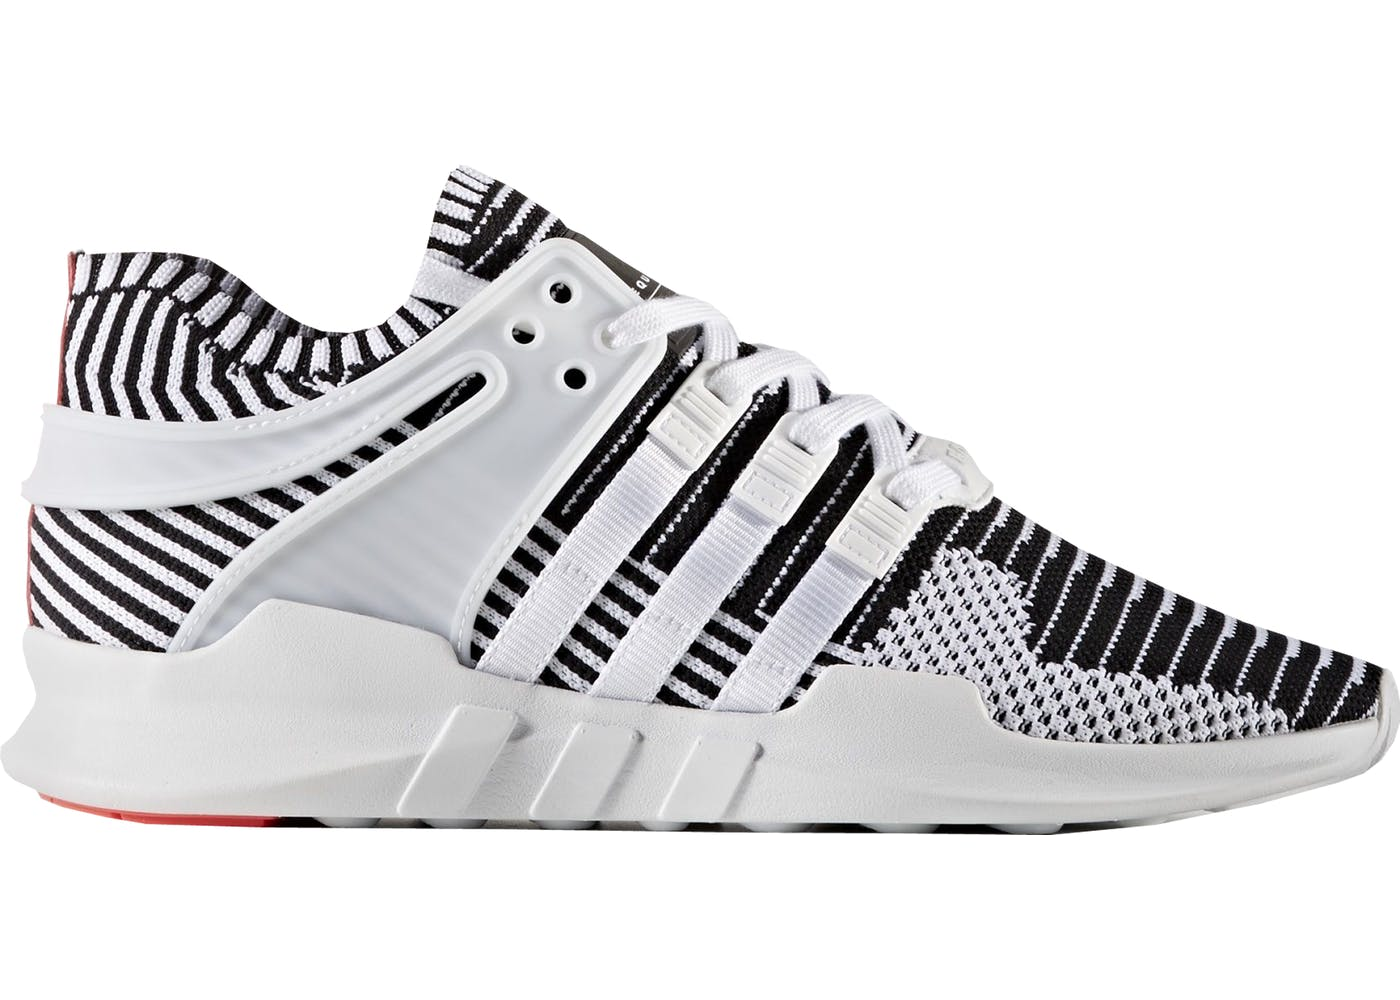 adidas Originals EQT Support ADV Men's Running Shoes White